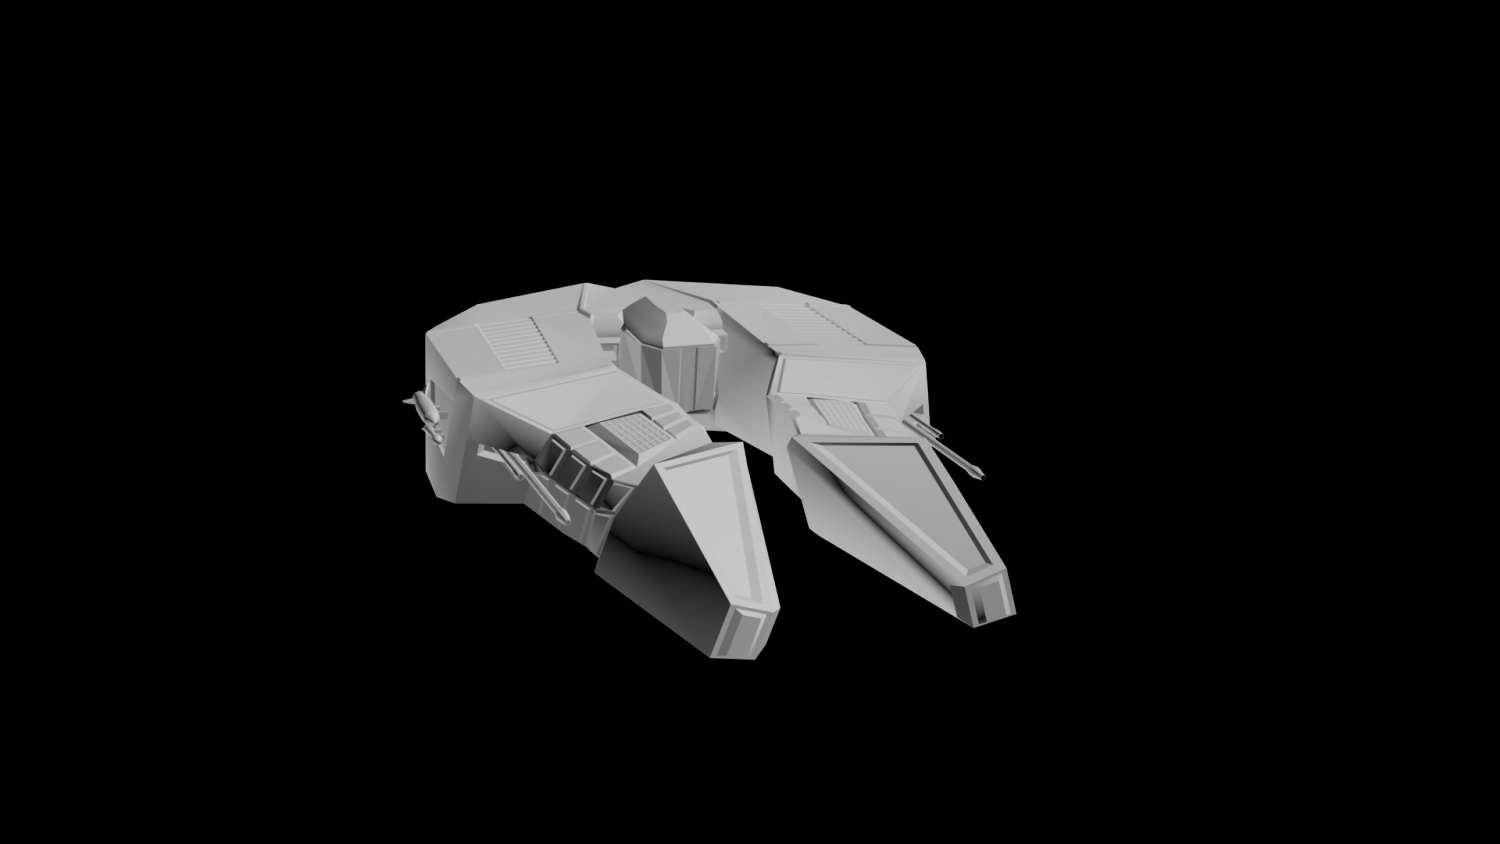 Spaceship Free 3D Model In Fantasy Spacecraft 3DExport